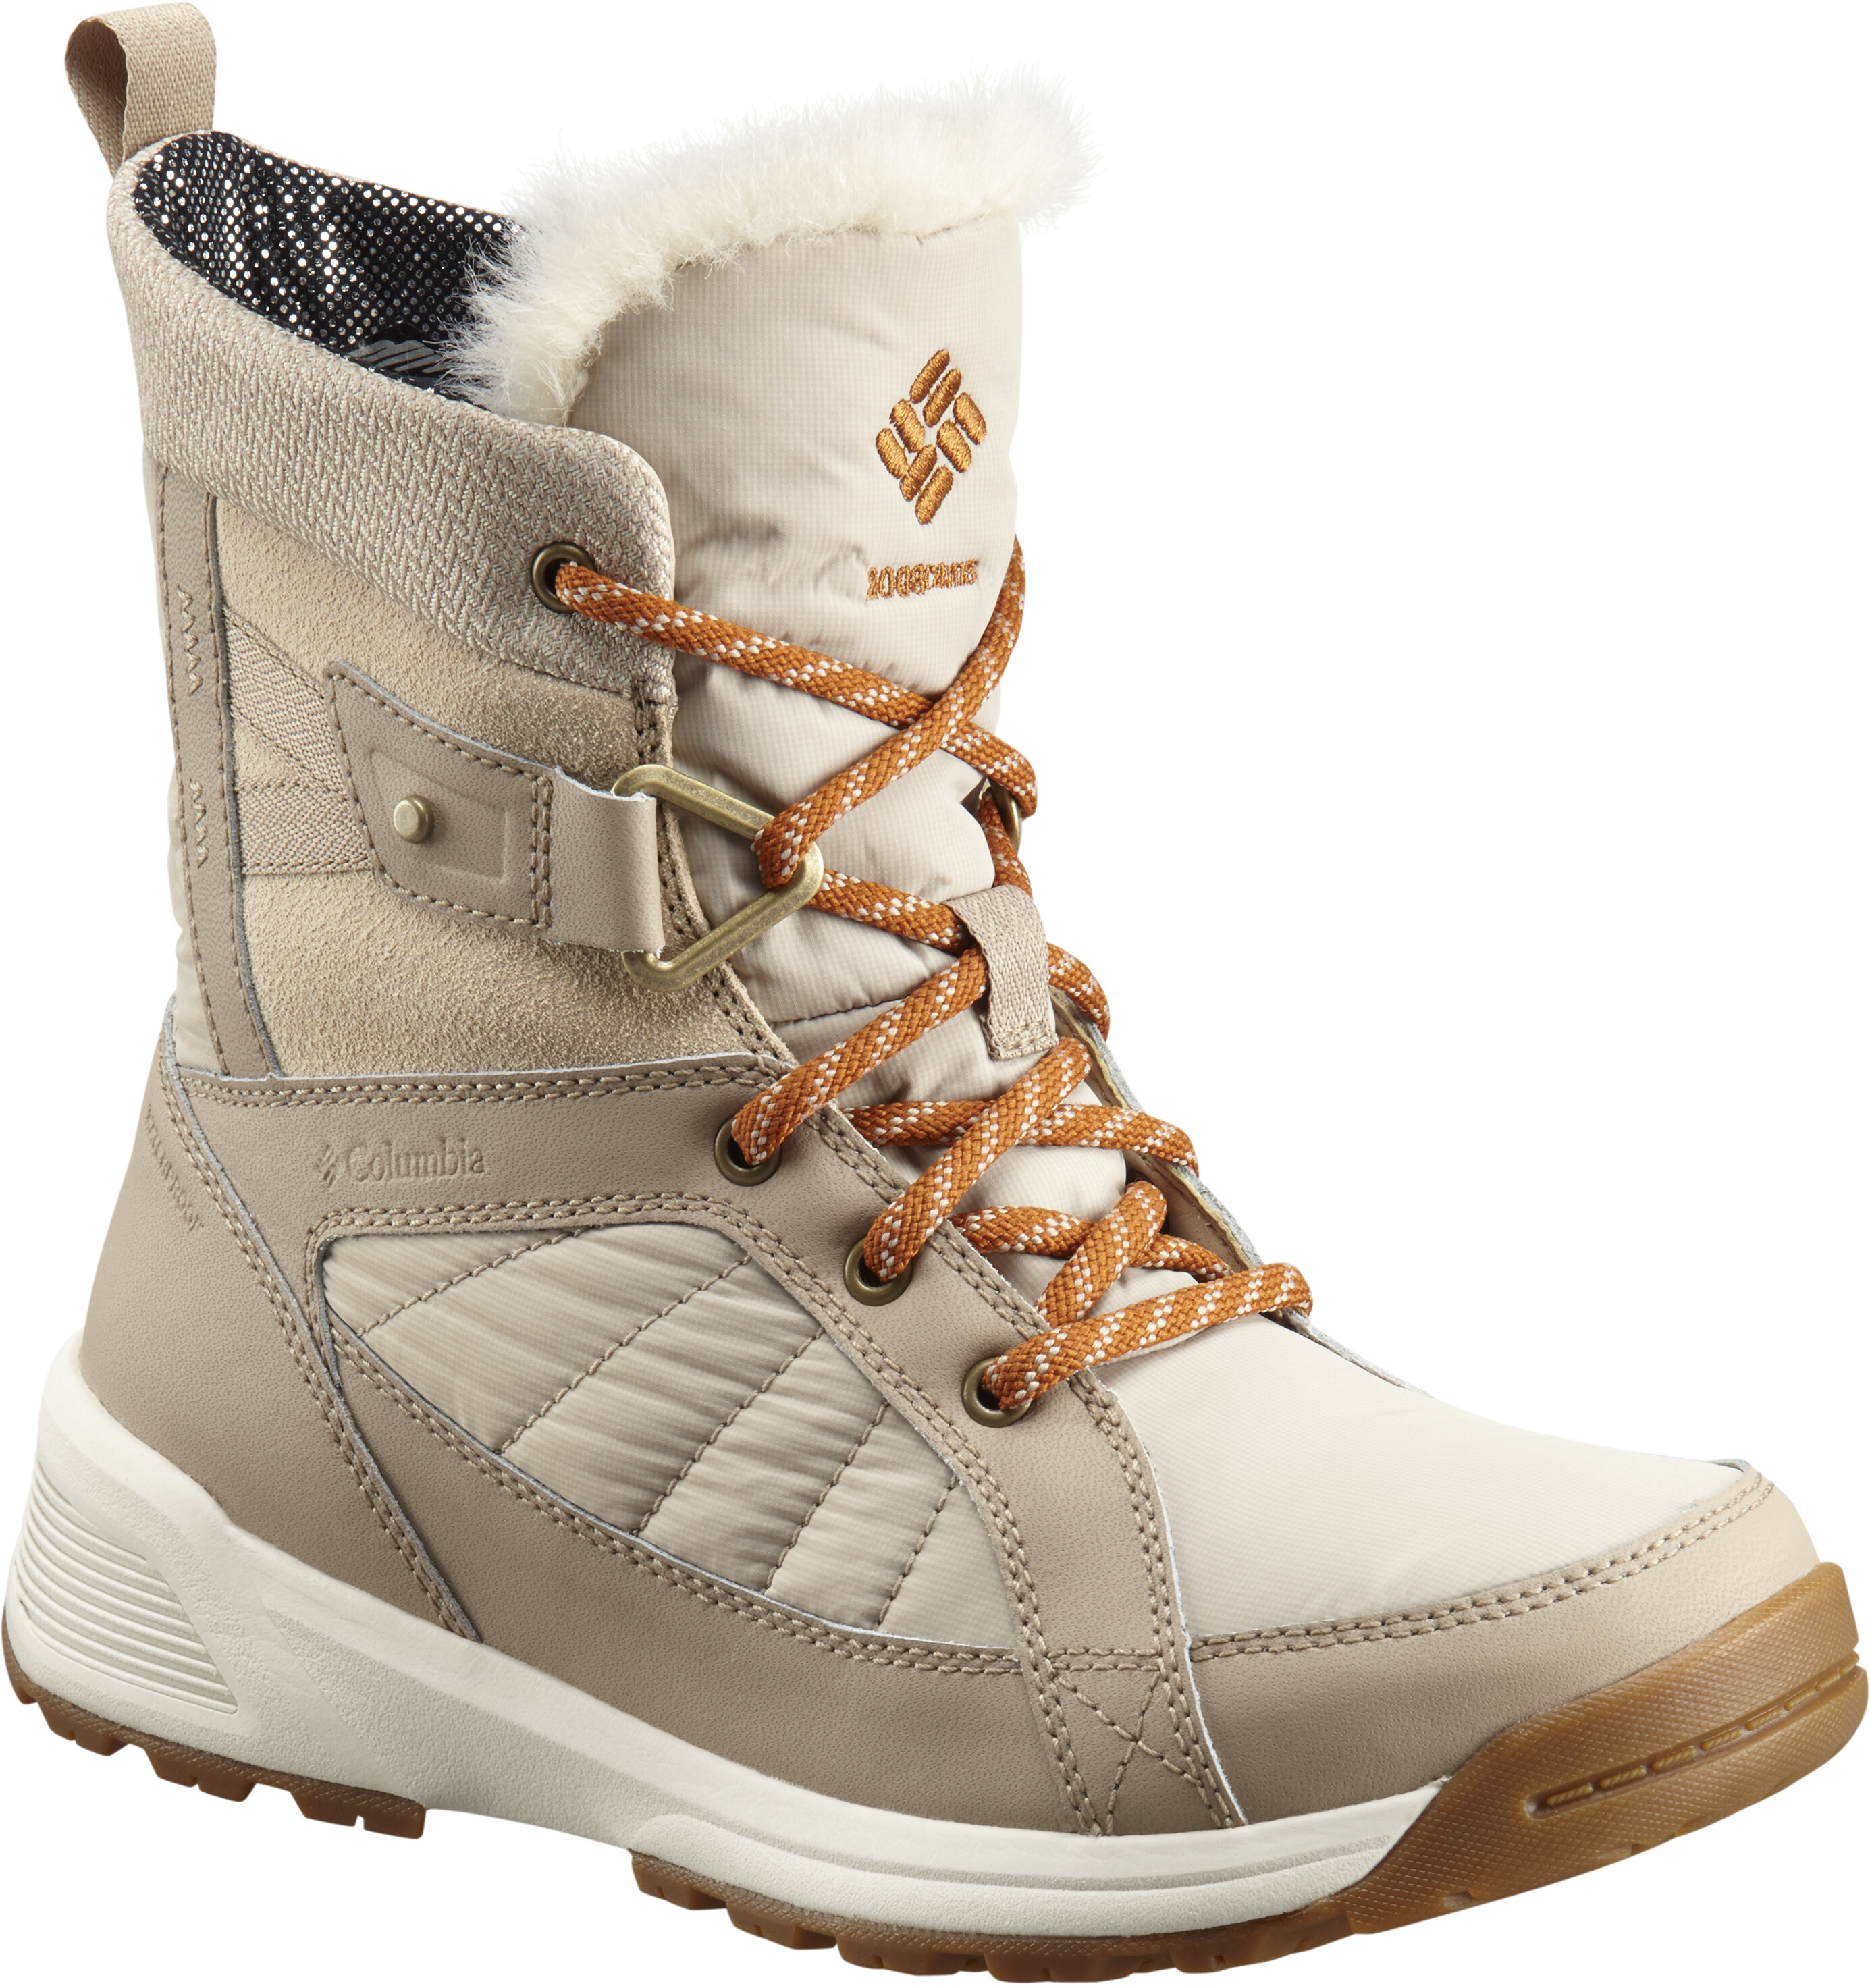 4a26f9c3508 Columbia Meadows Shorty Omni-Heat 3D - Bottes Femme - beige sur CAMPZ !